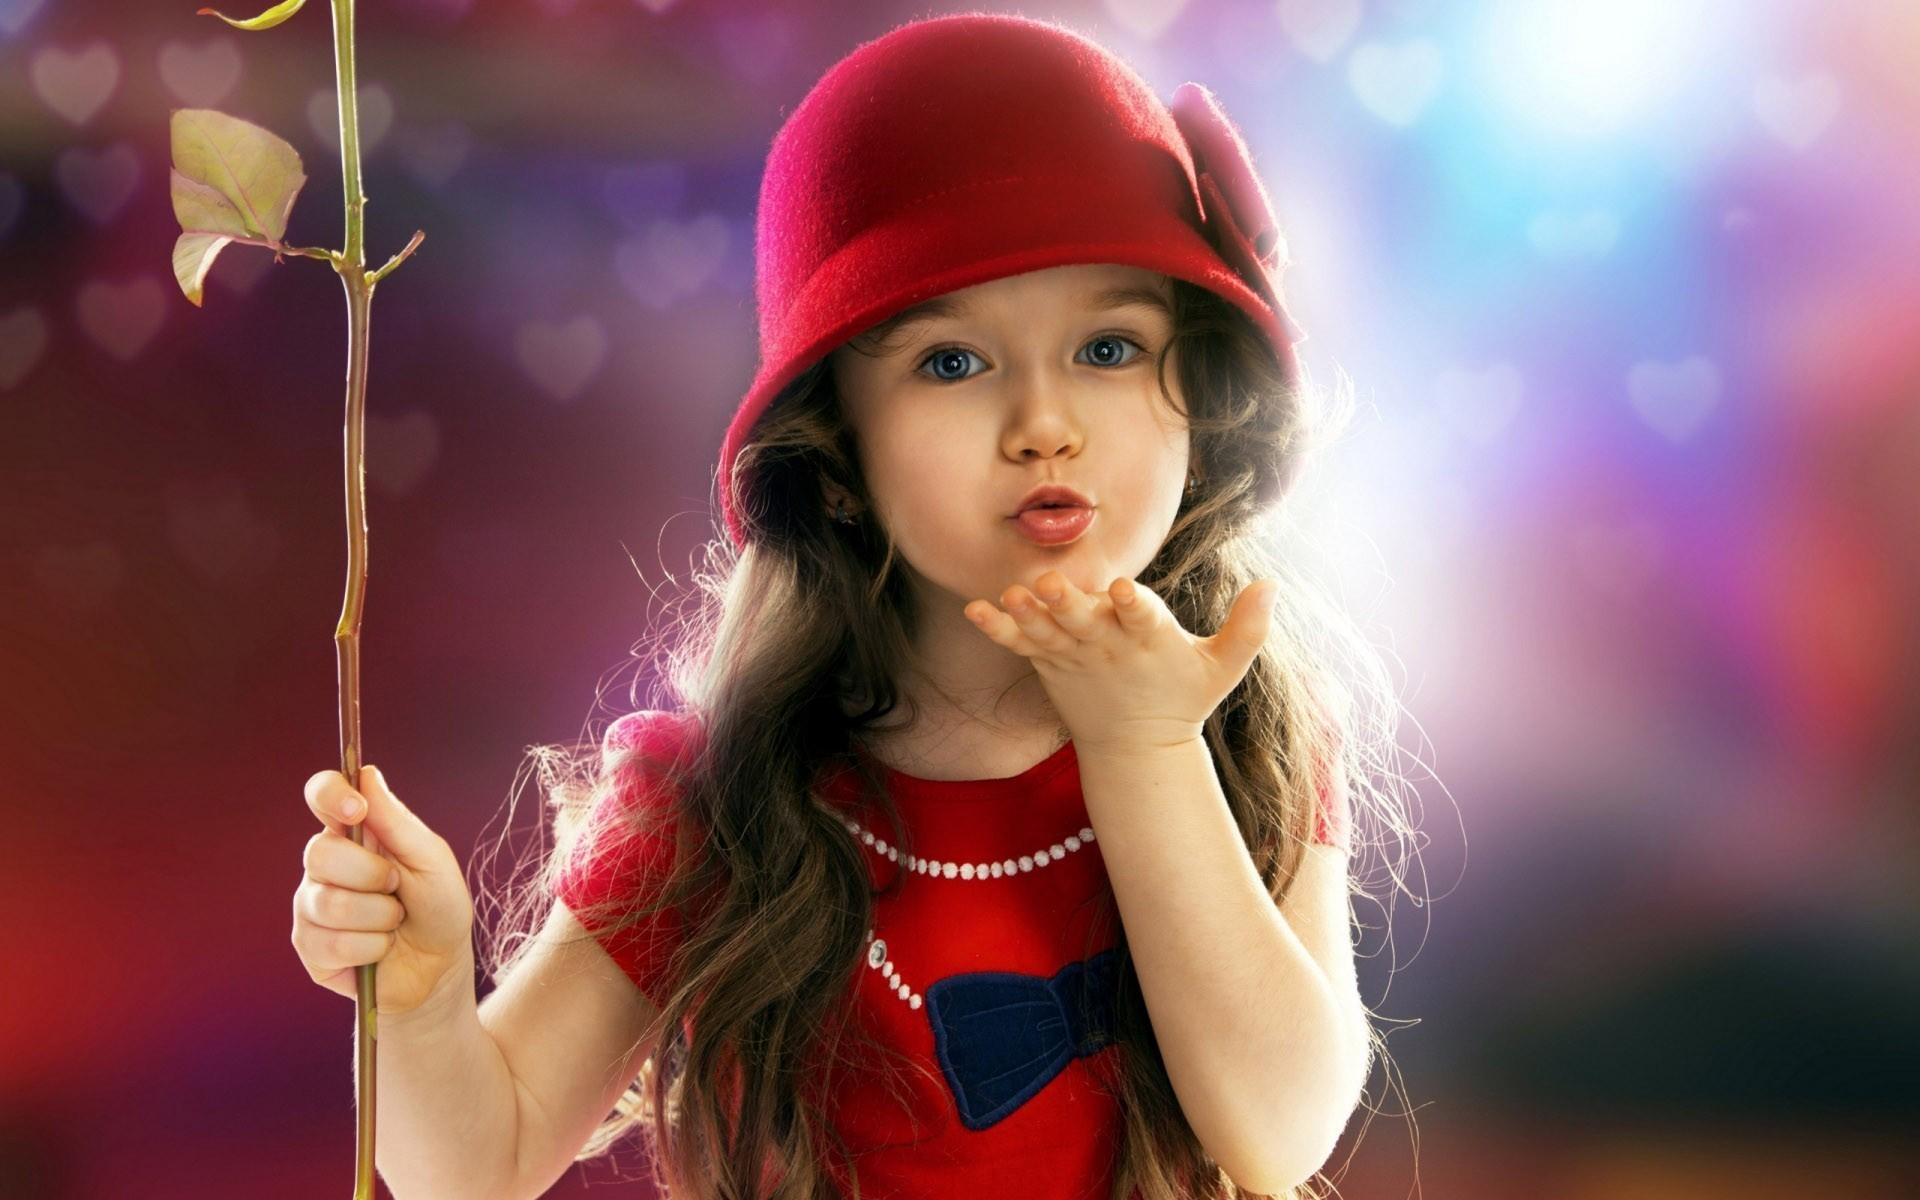 1920x1200  Cute Baby Girl Wallpaper · 74 · Download · Res: 1920x1080 ...